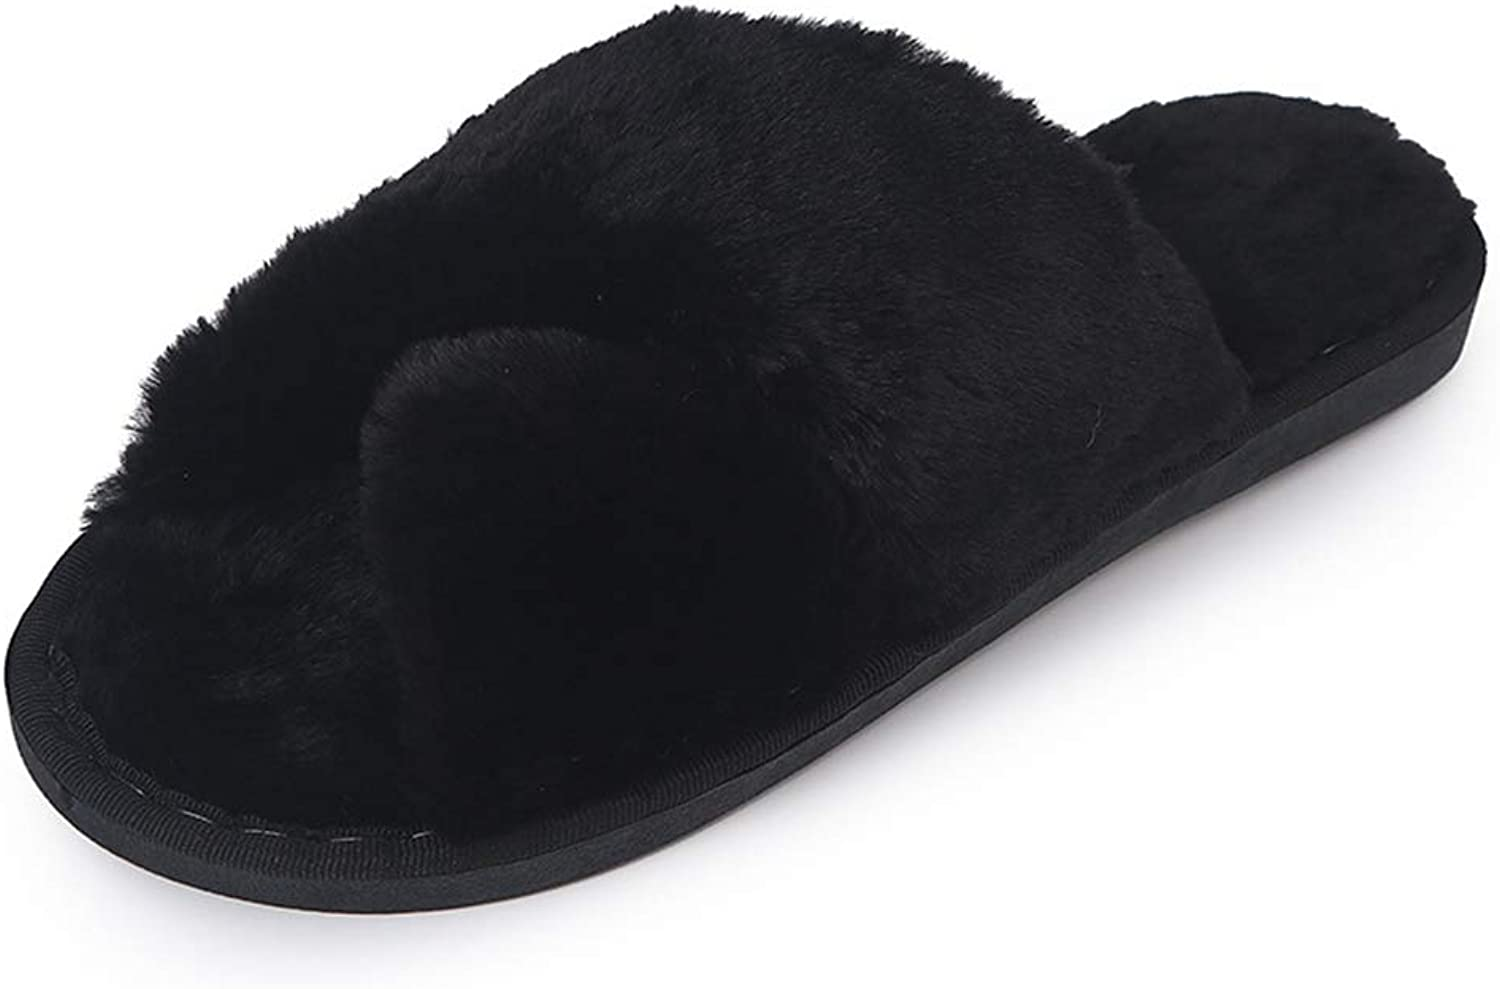 T-JULY Women's Suede Winter Warm Cross Fur Slippers Home shoes Candy colorful Indoor Slides Soft Casual Sandals